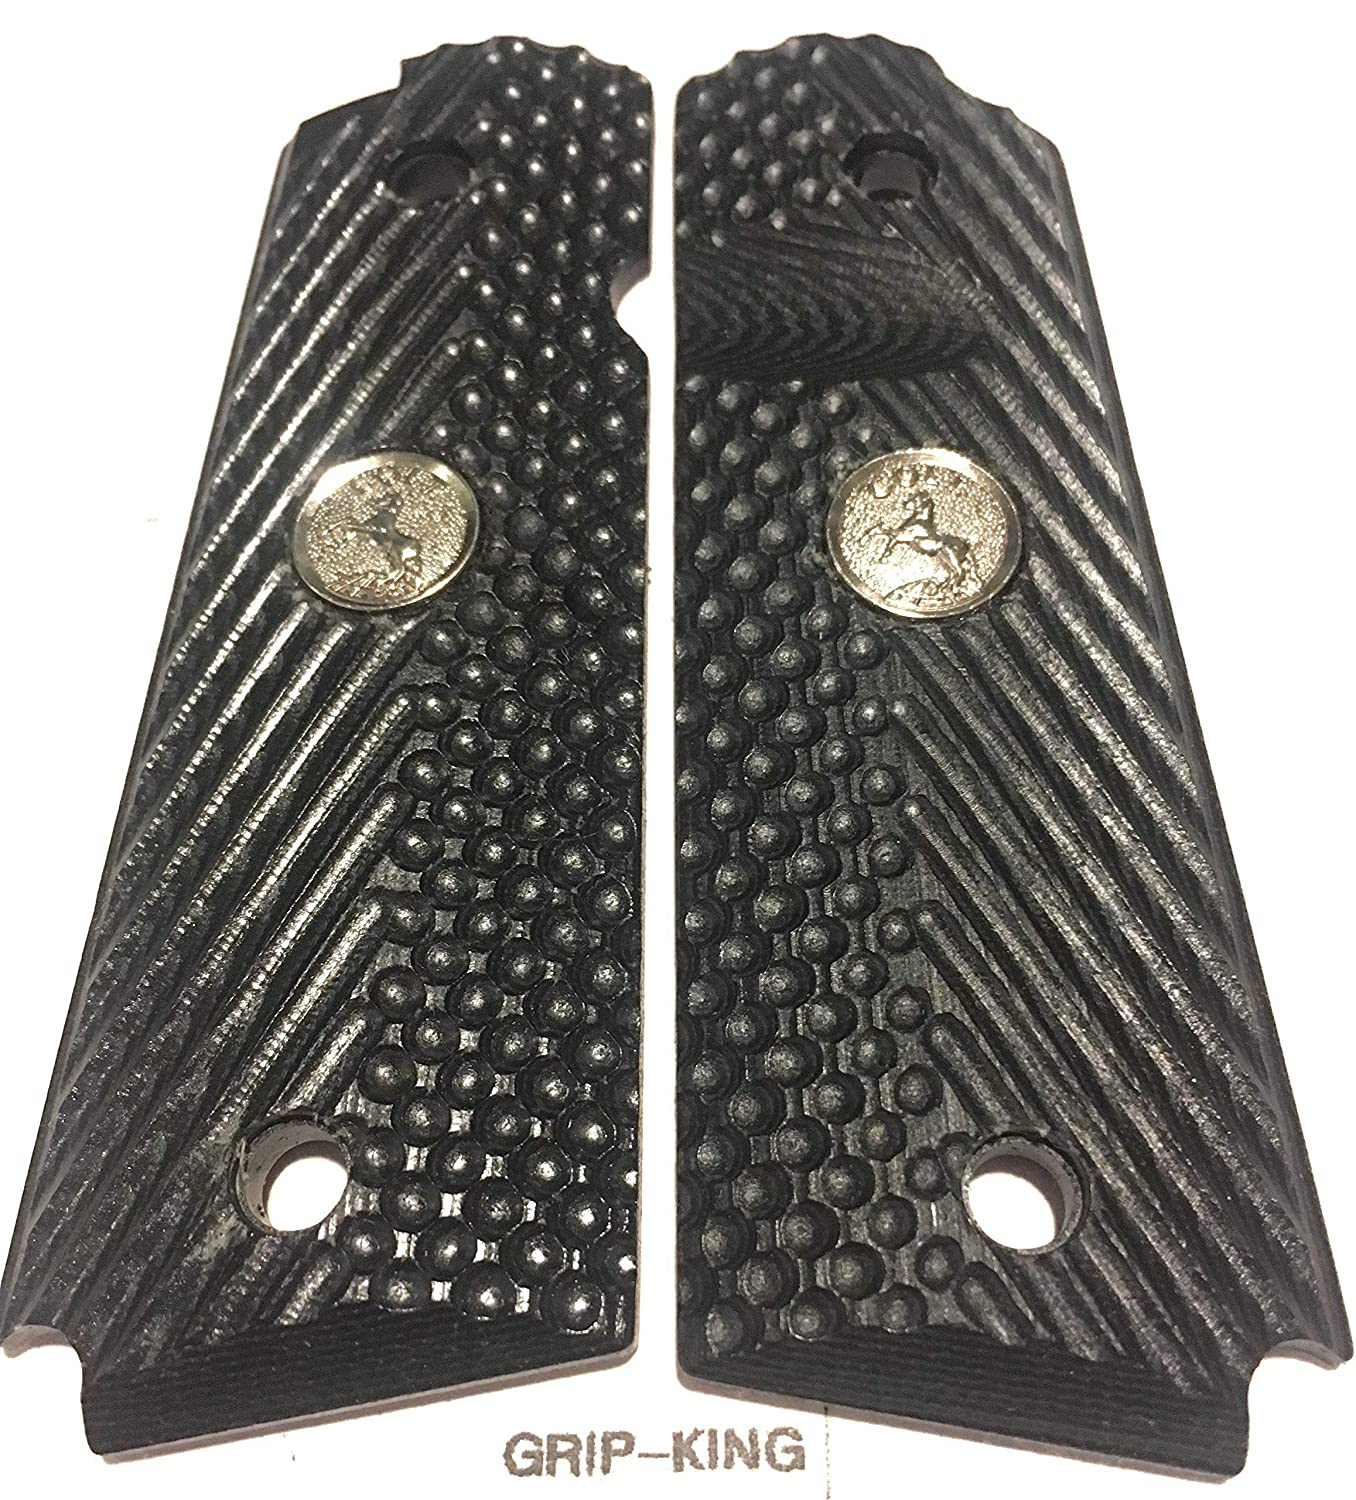 1911 GRIPS FITS COLT FULL SIZE,